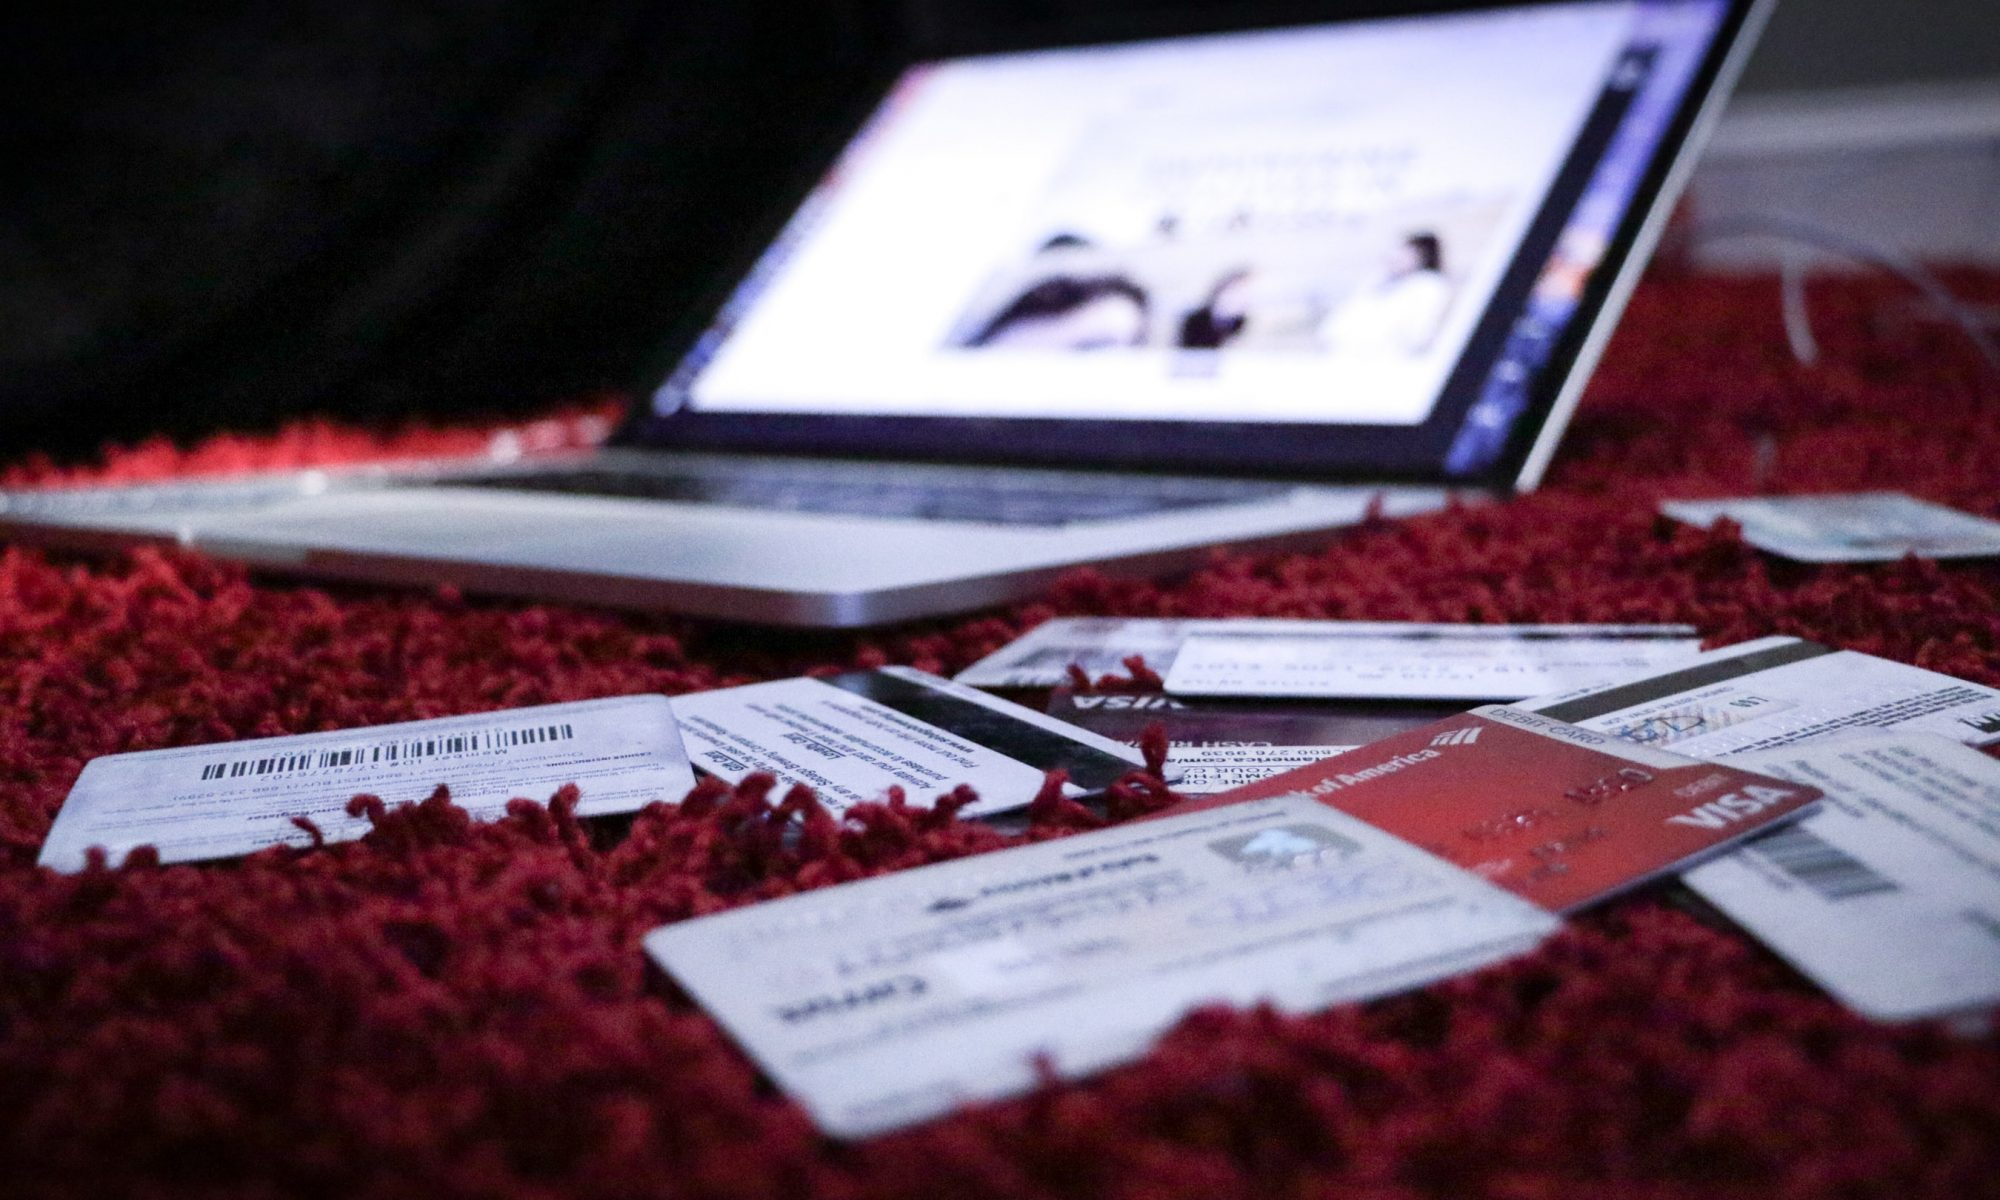 laptop and credit cards